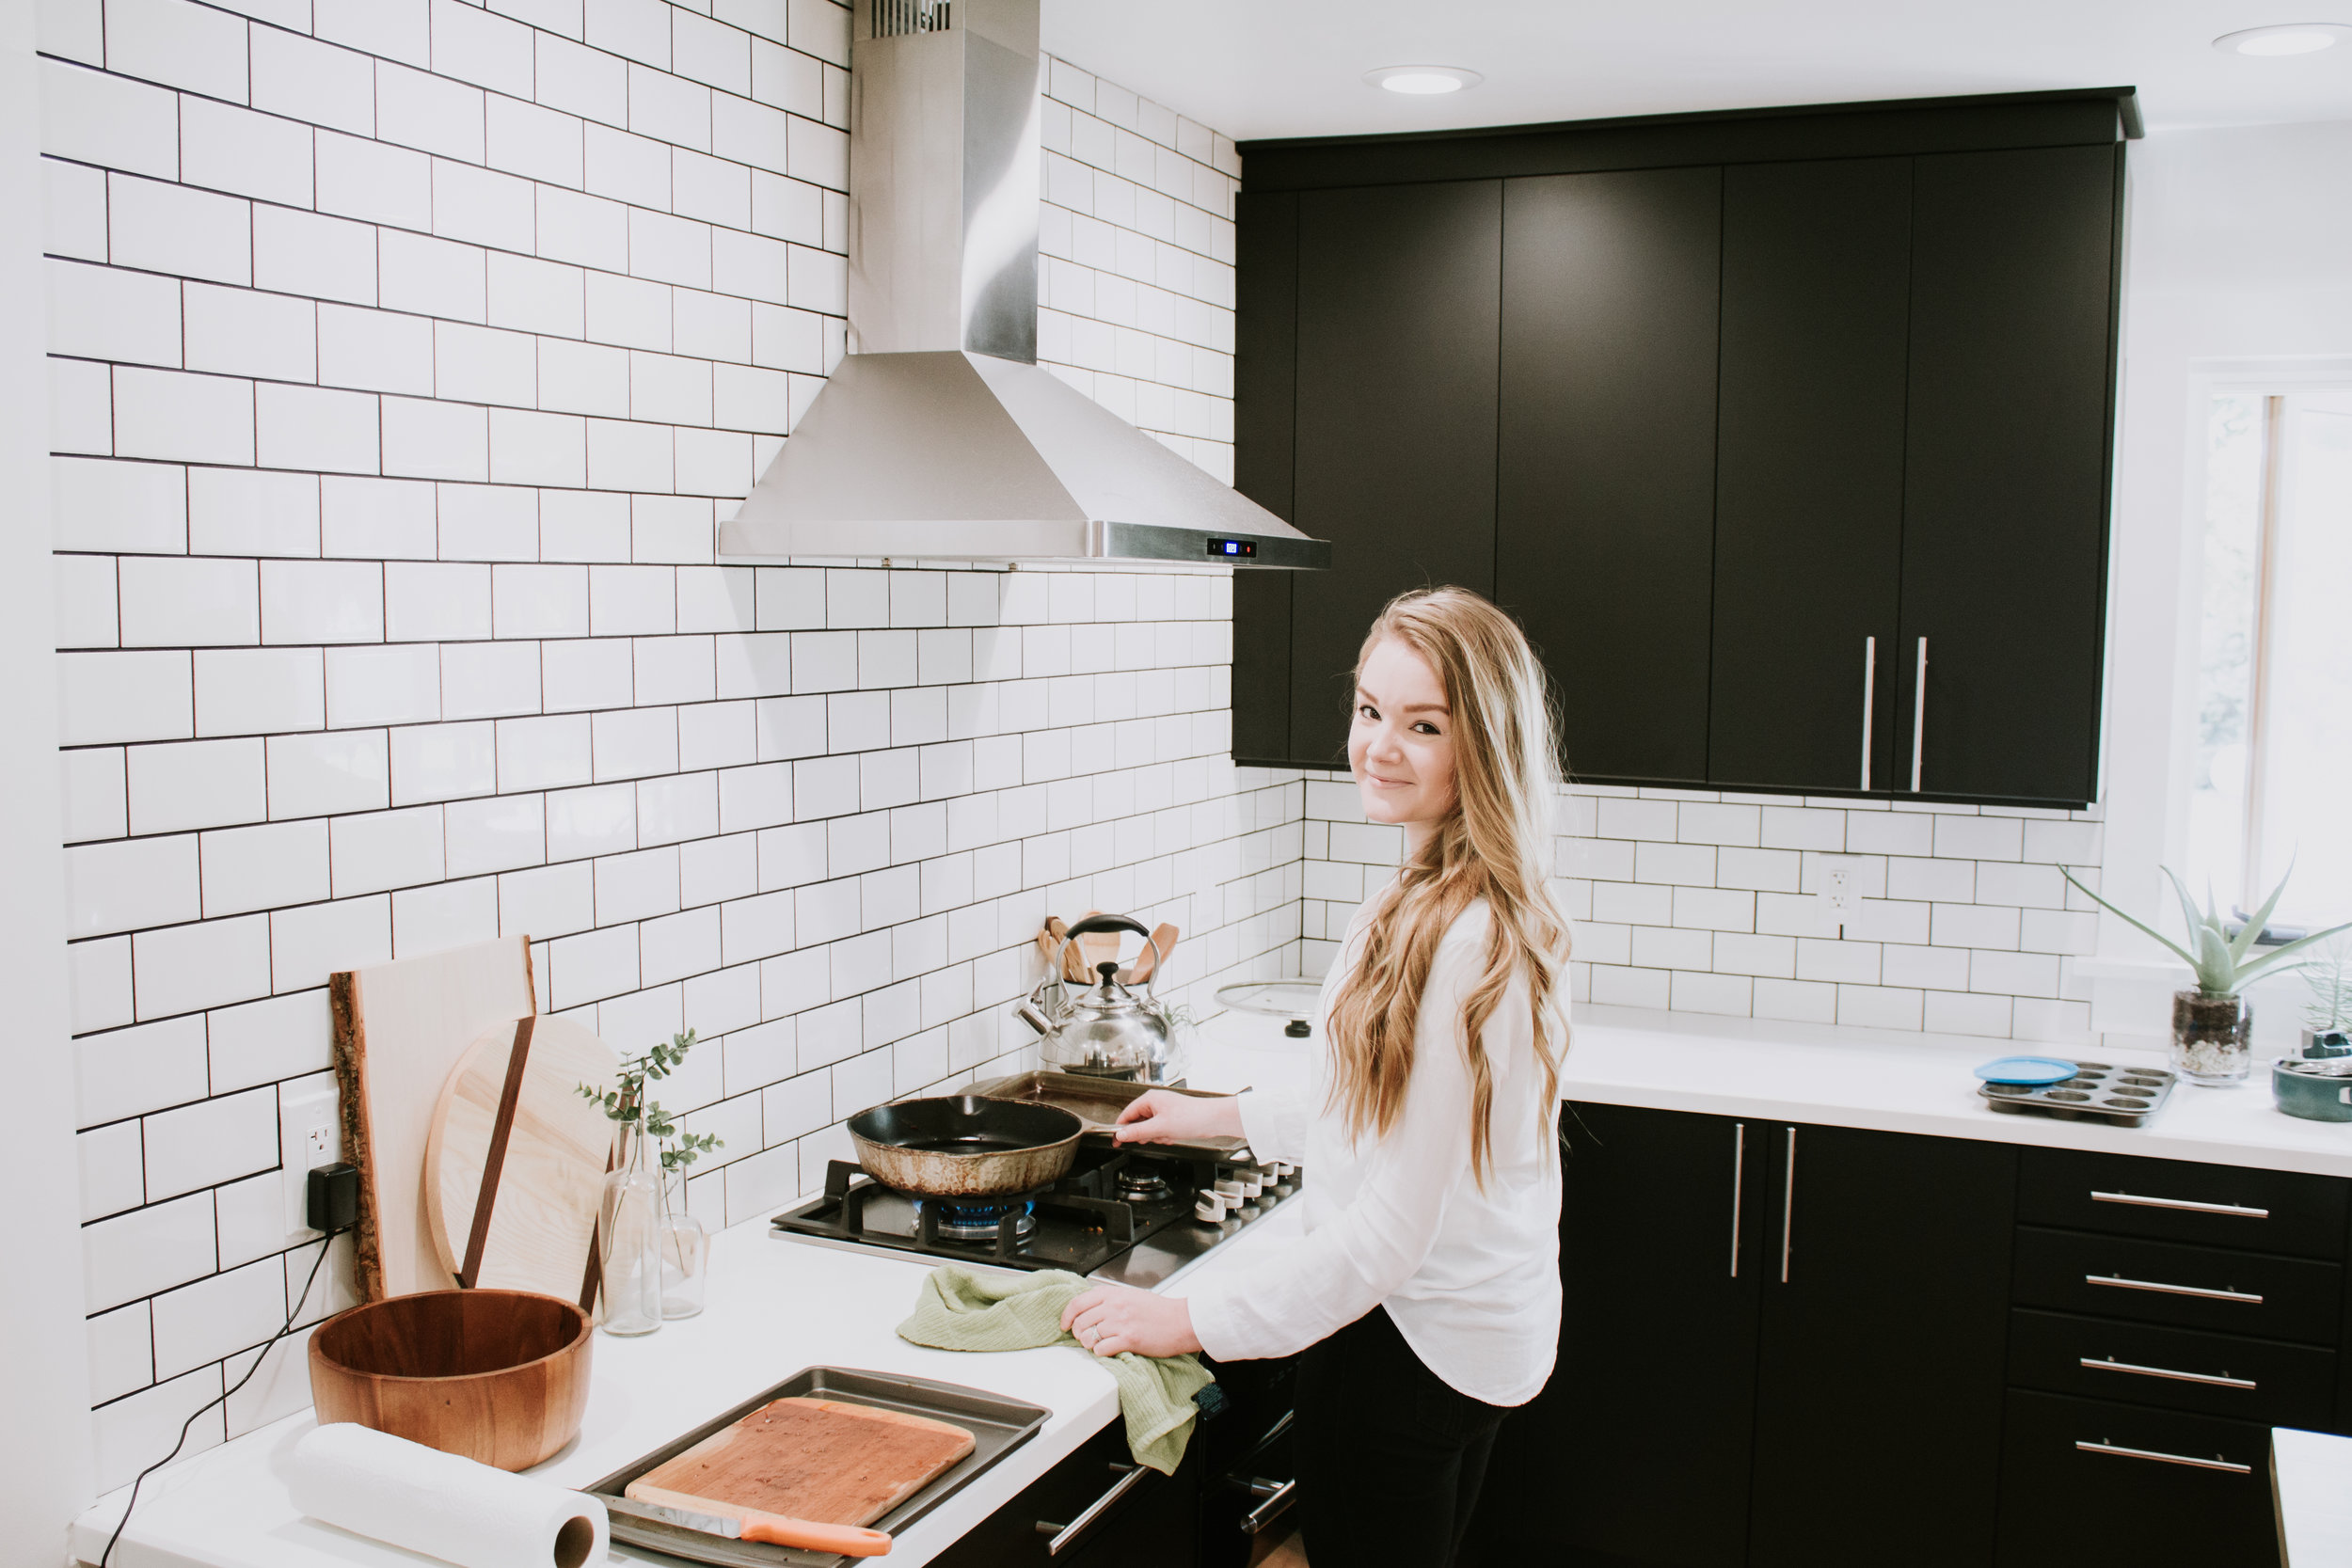 2018 in Review - What happened in our lives in 2018 - the behind the scenes of Refined Design - Our kitchen was featured on Apartment Therapy!